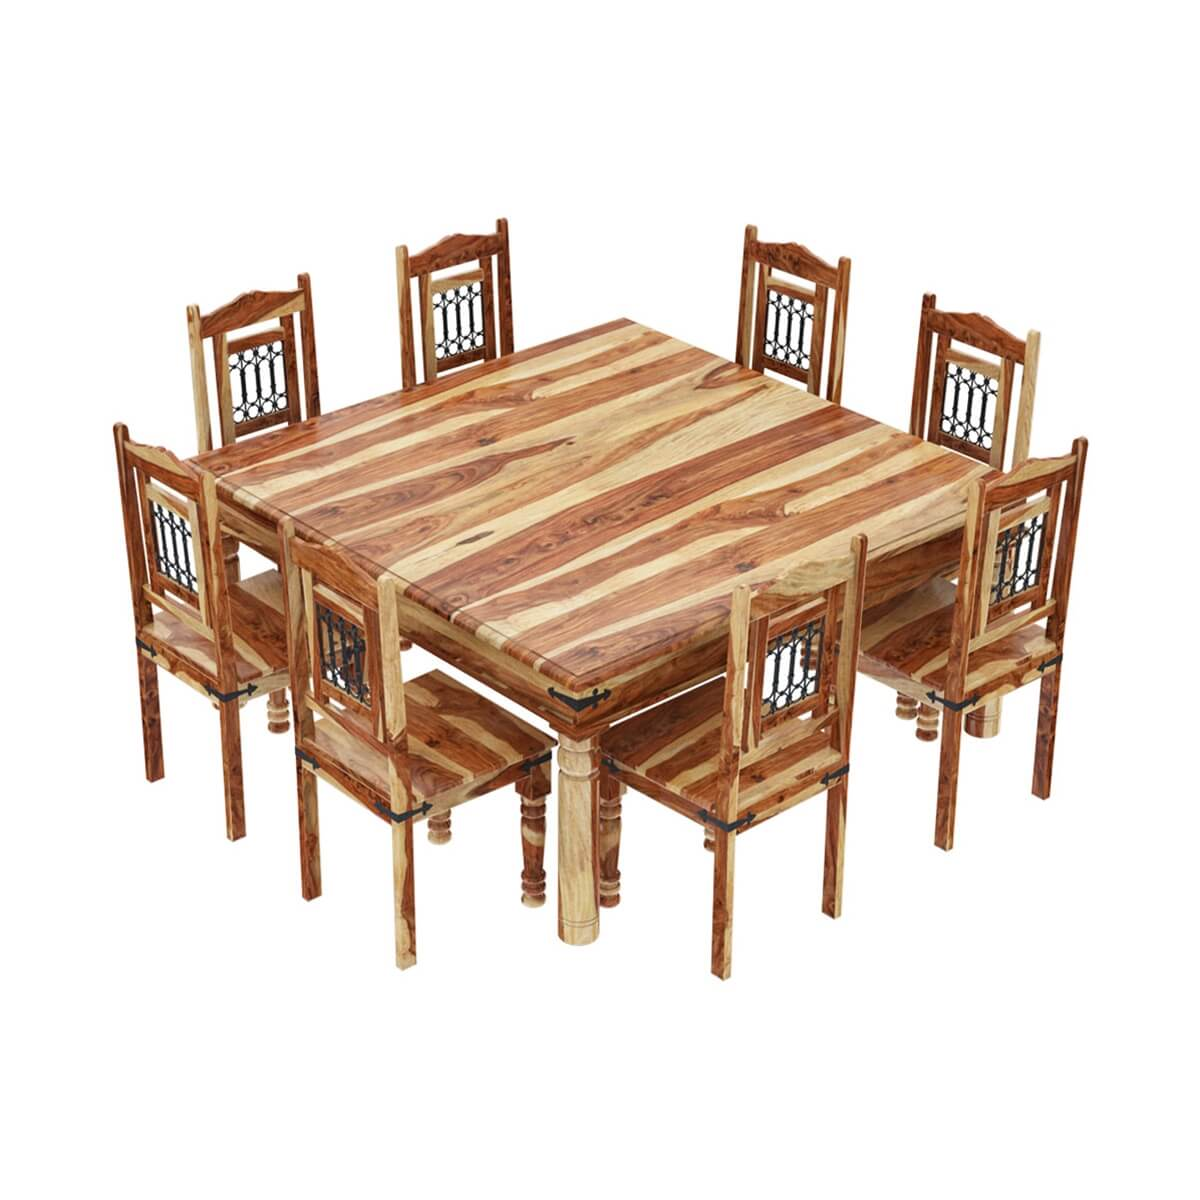 square table with 8 chairs memory foam chair cushions peoria solid wood large dining and set